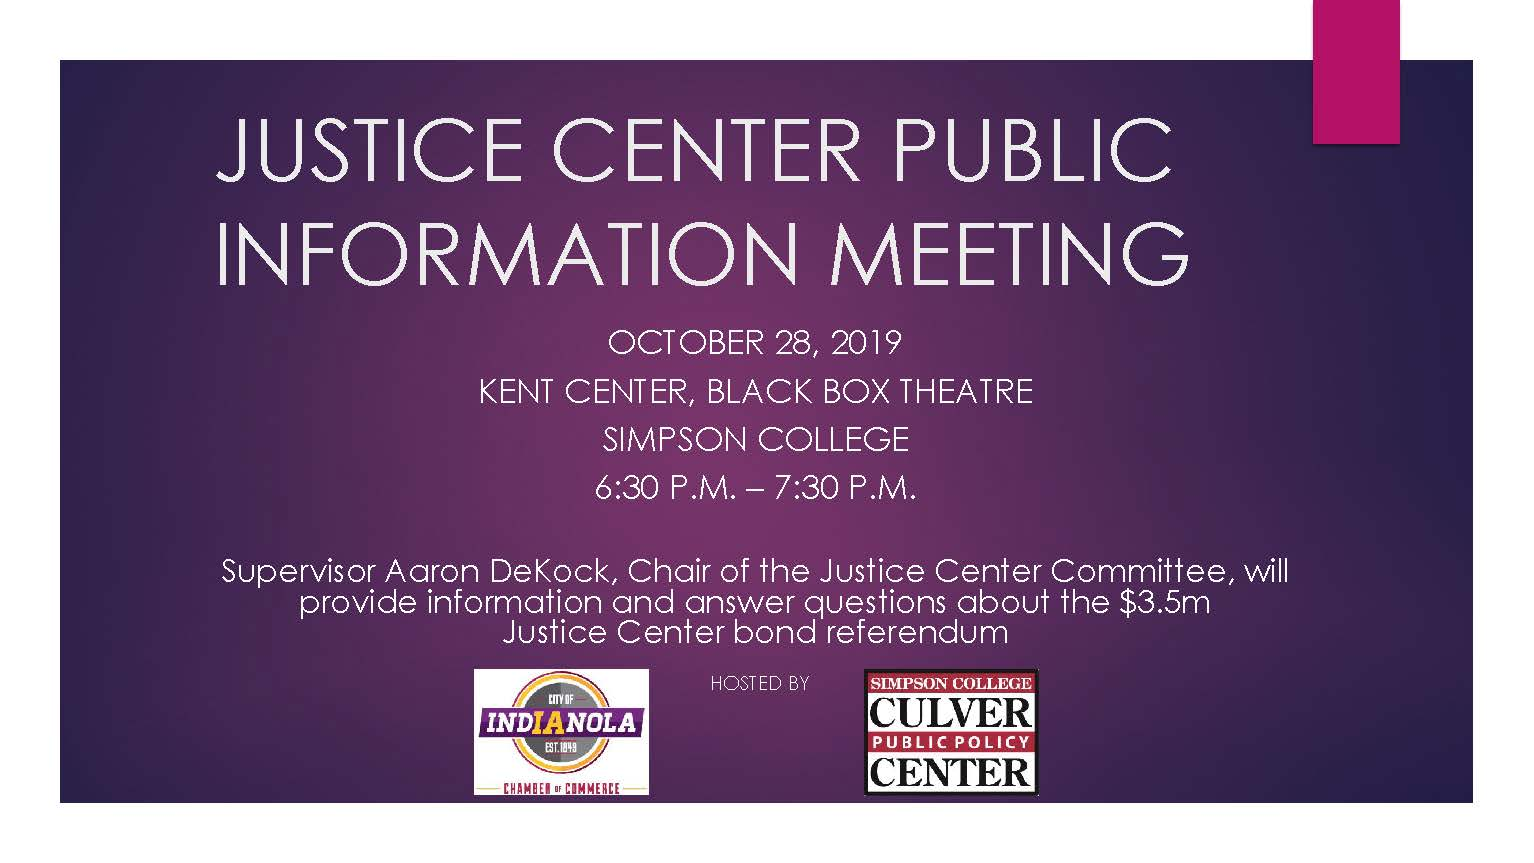 19.10.11_WW_Justice Center Meeting Announcement Final